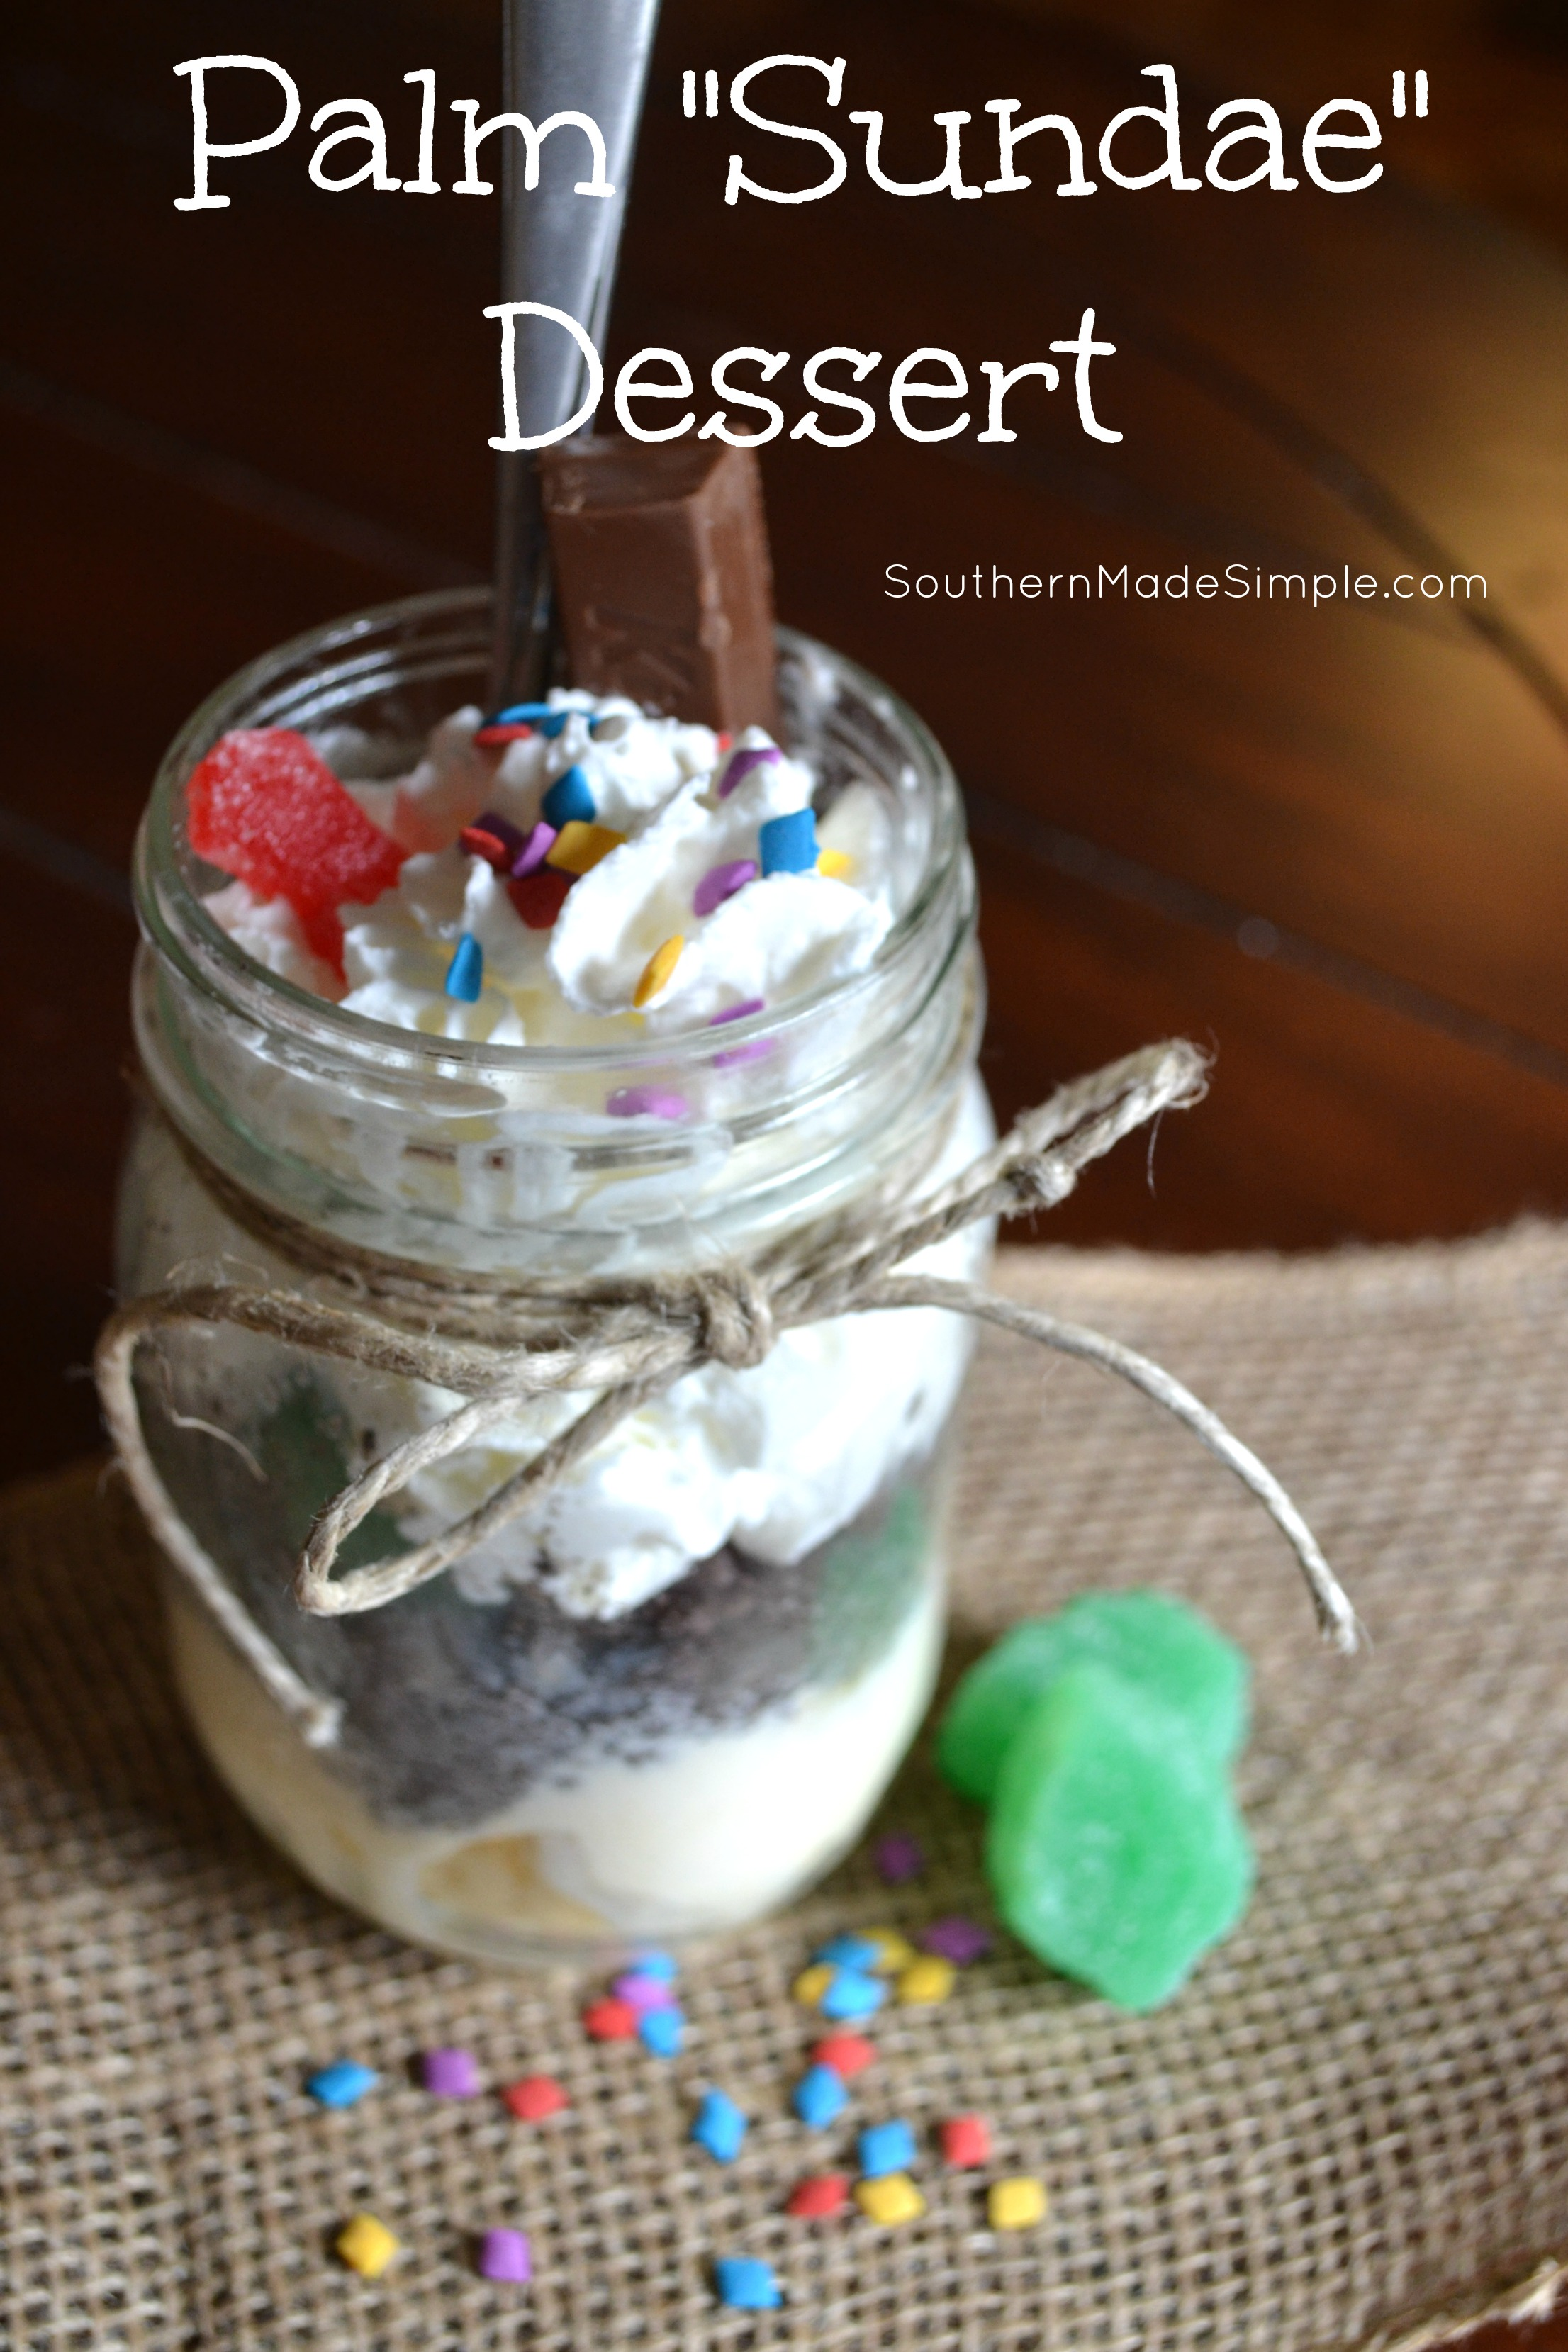 Palm Sundae Ice cream treats - A perfect Sunday School Activity for Palm Sunday!